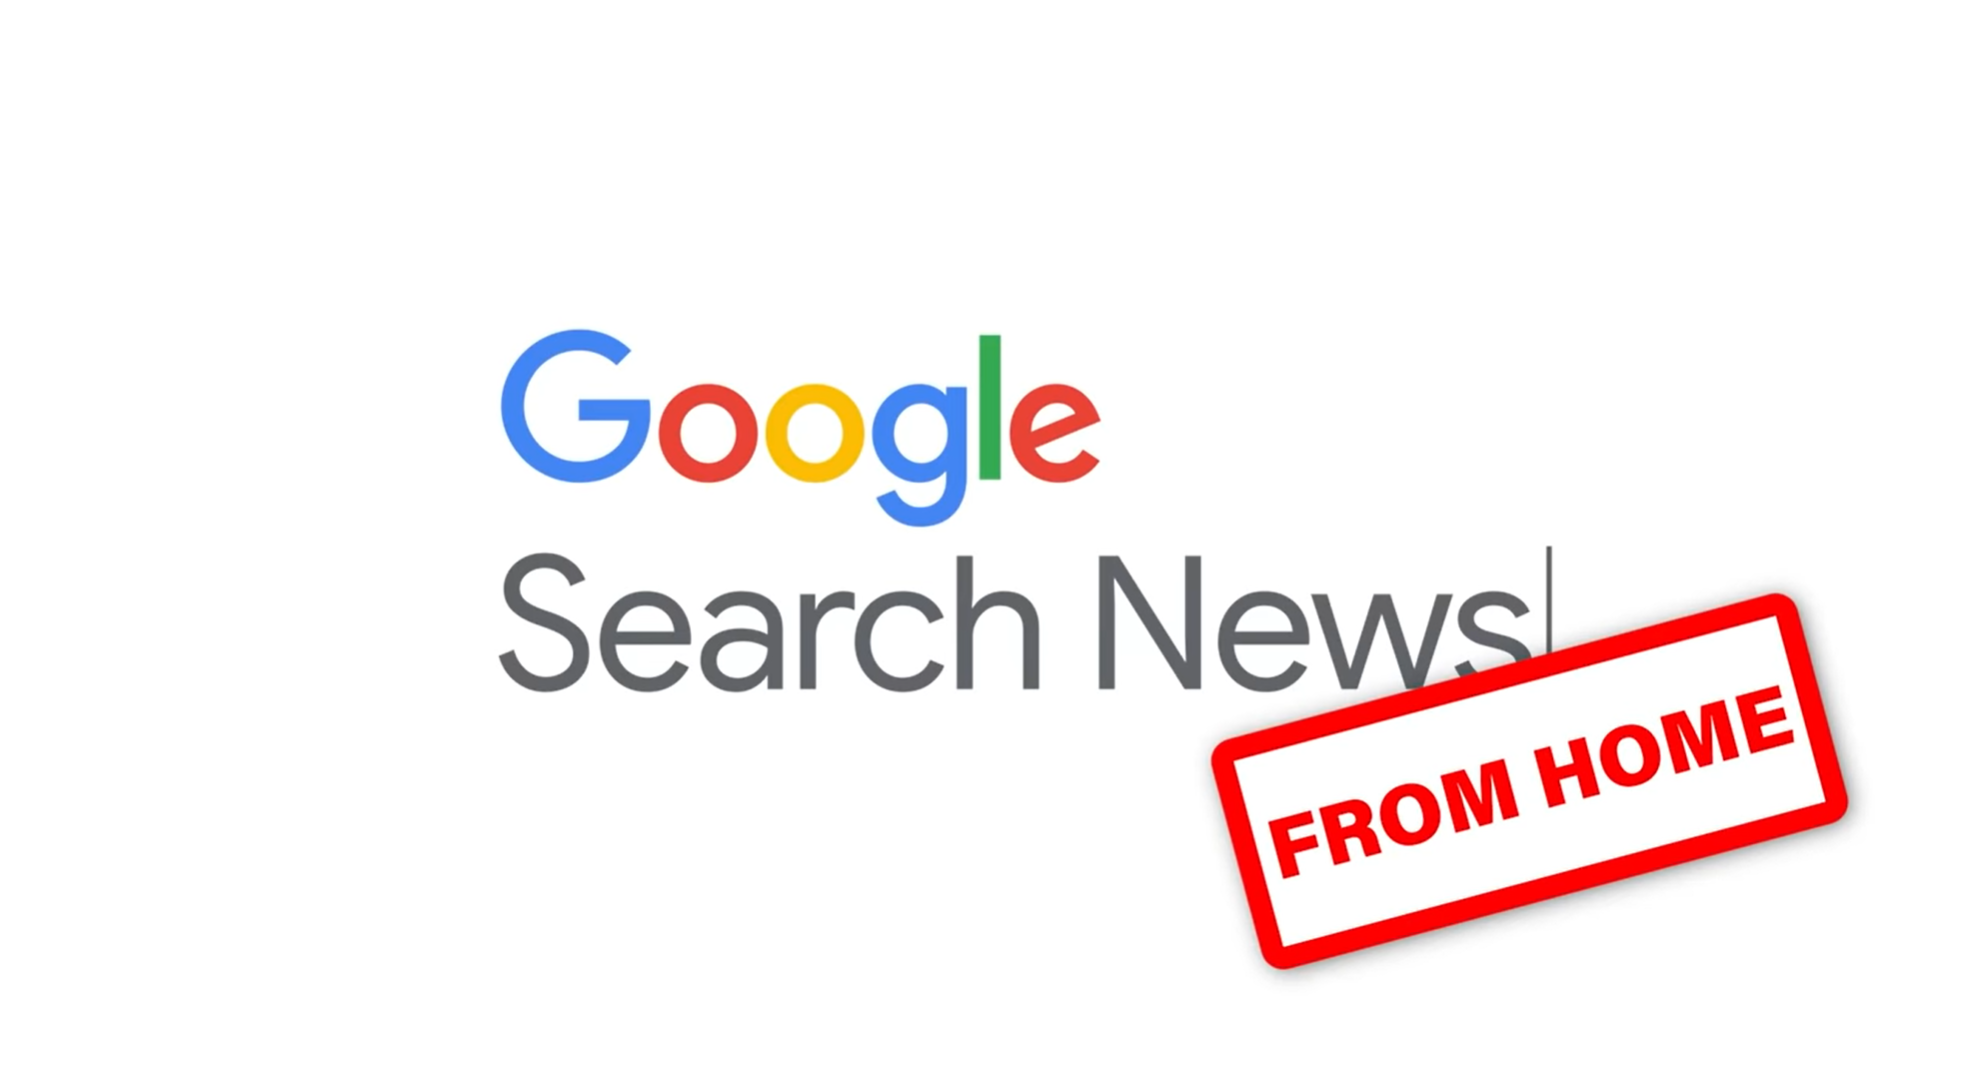 Google Search News from Home